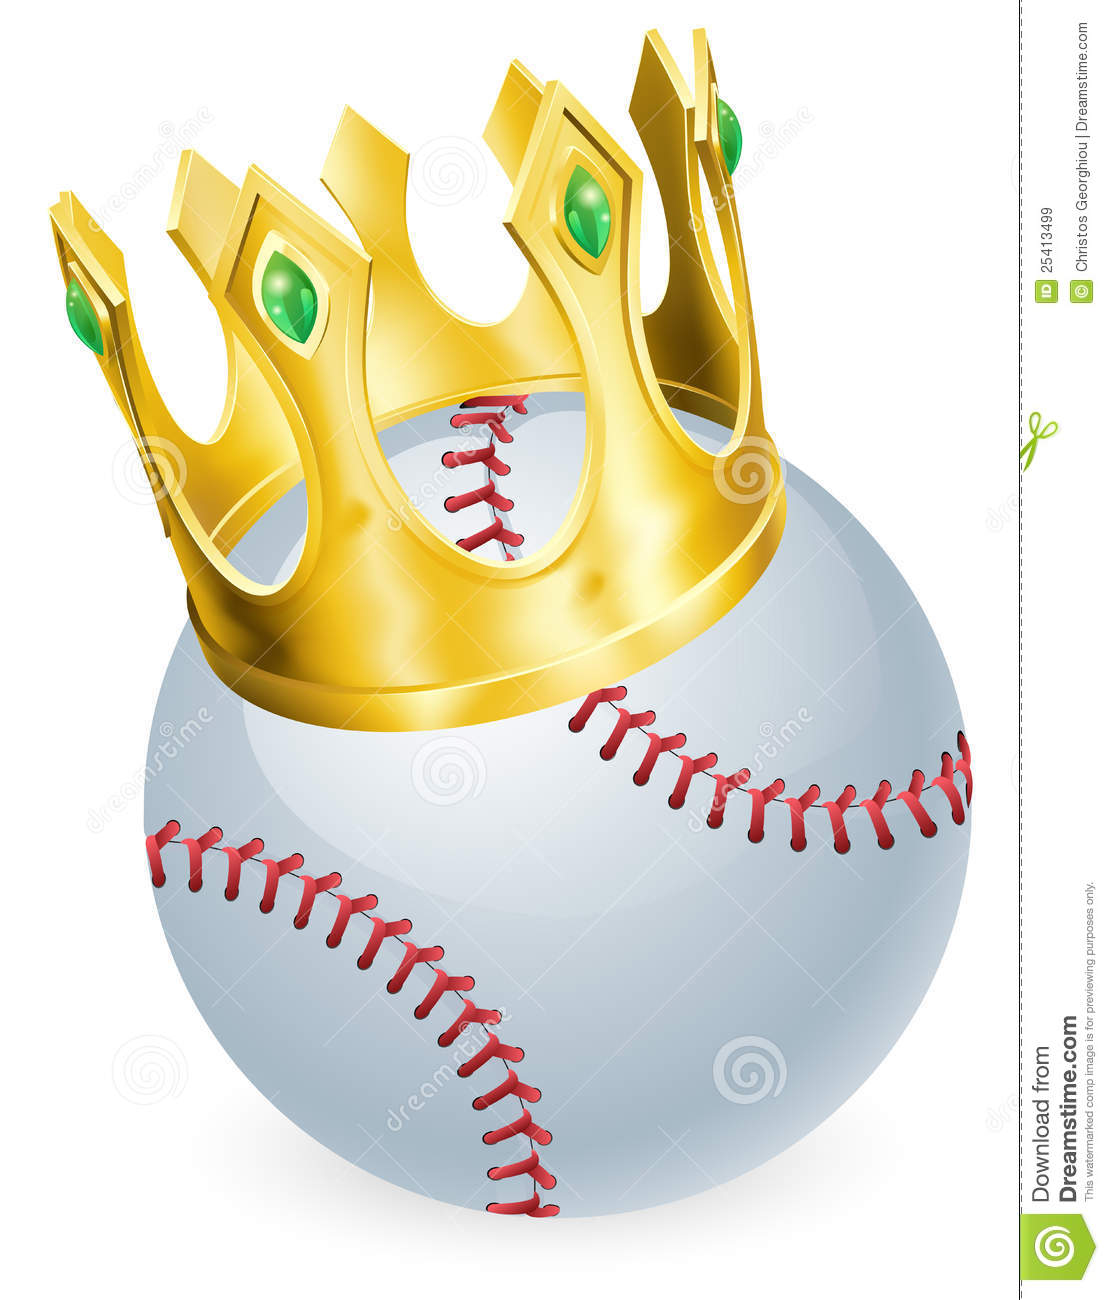 King of baseball concept, a baseball ball wearing a gold crown.